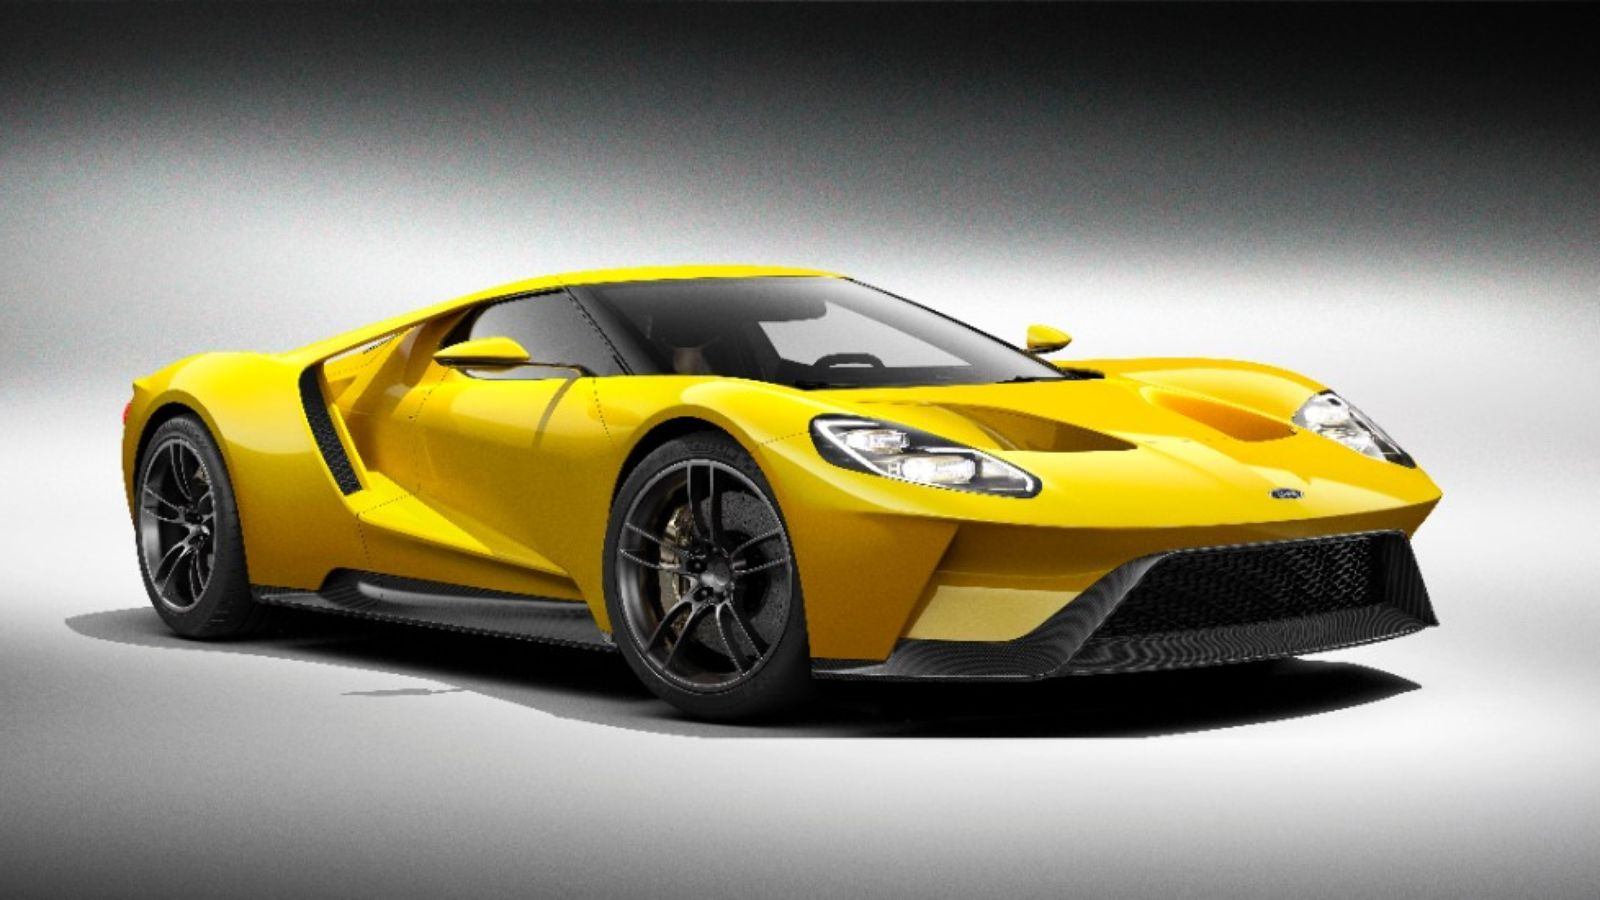 Naias 2015 The Cars And Technology Of Detroit S Auto Show Ford Gt 2017 Ford Gt Ford Gt 2016